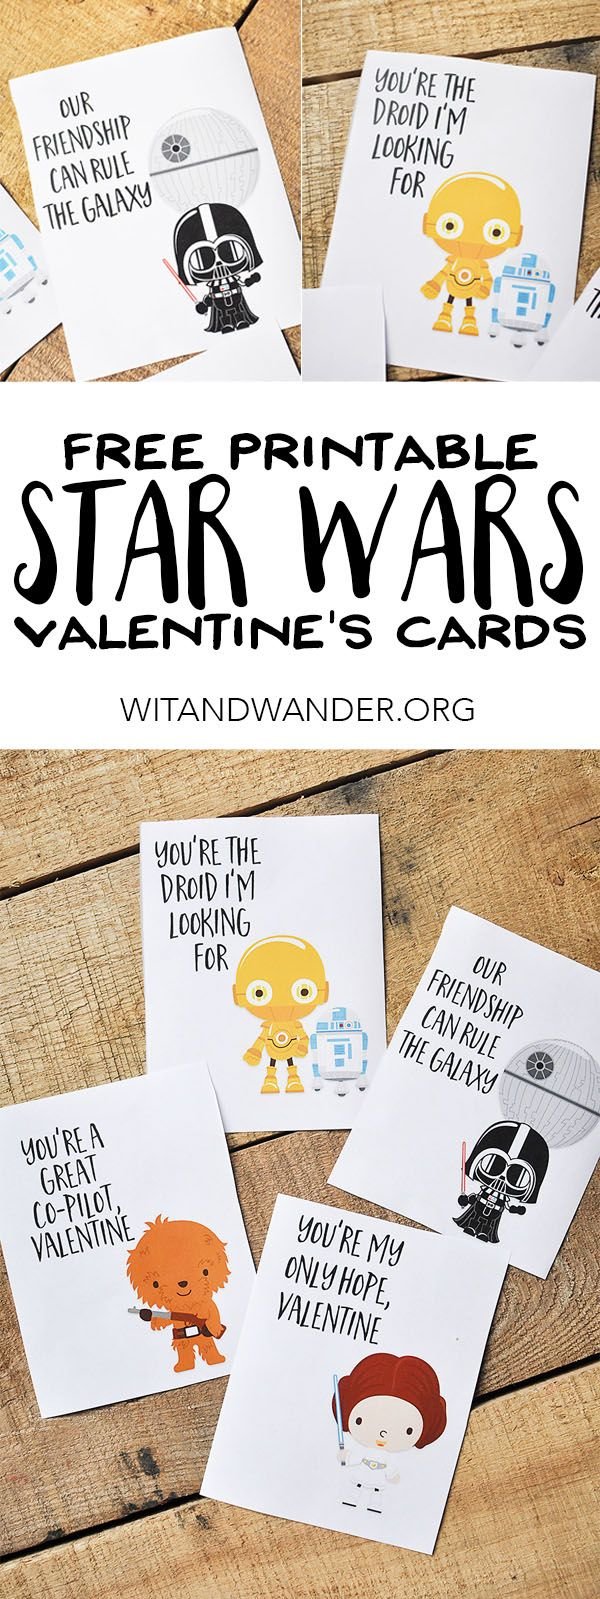 Free Printable Star Wars Valentines Day Card | Wit & Wander